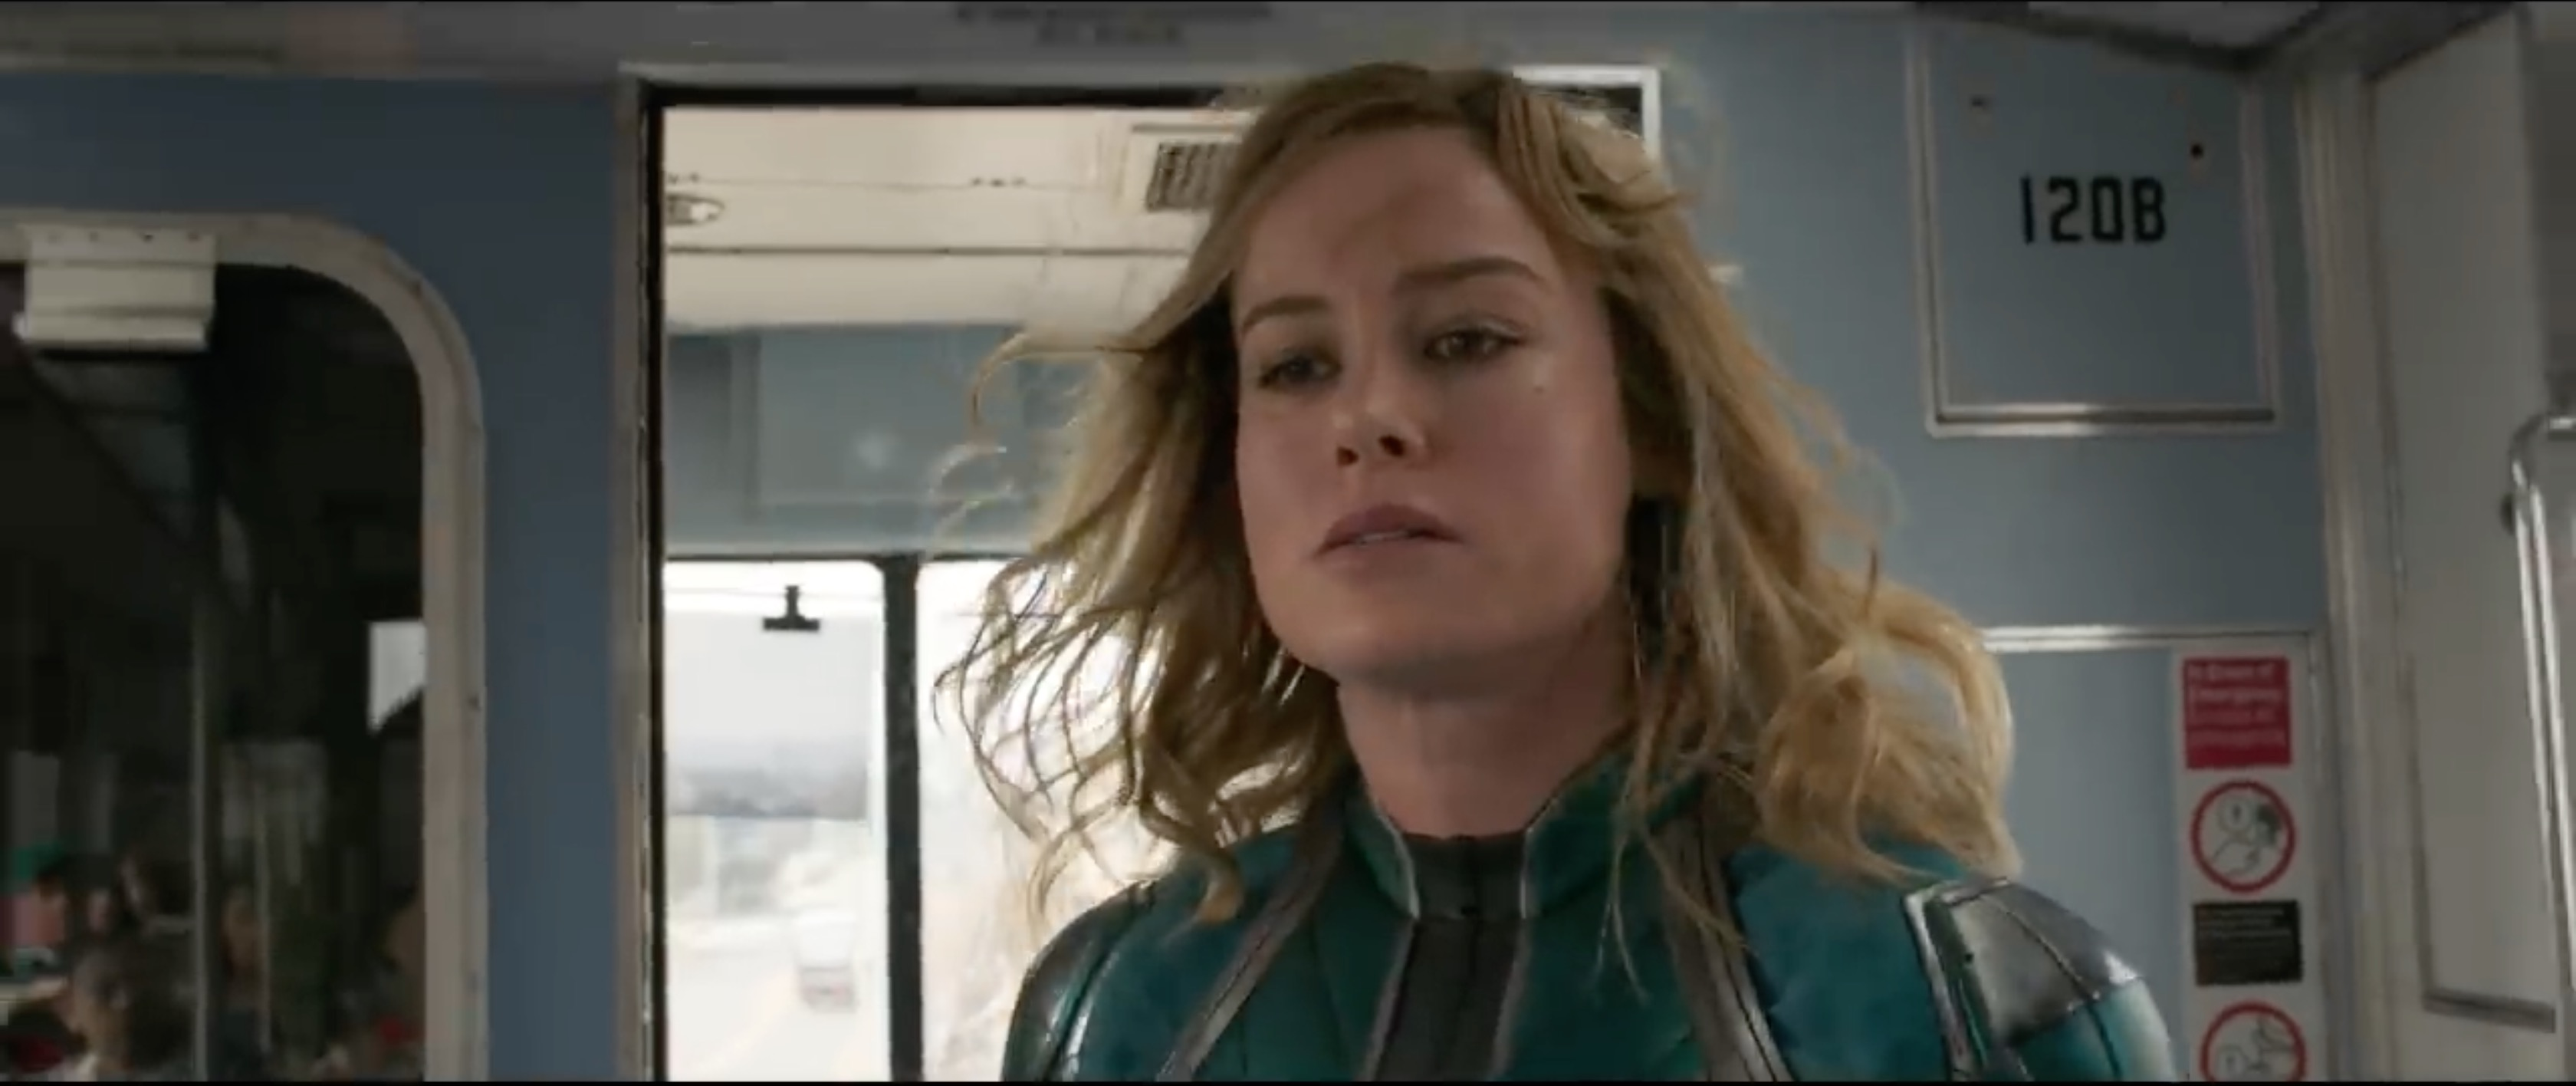 Captain Marvel Trailer: Hope begins with a hero